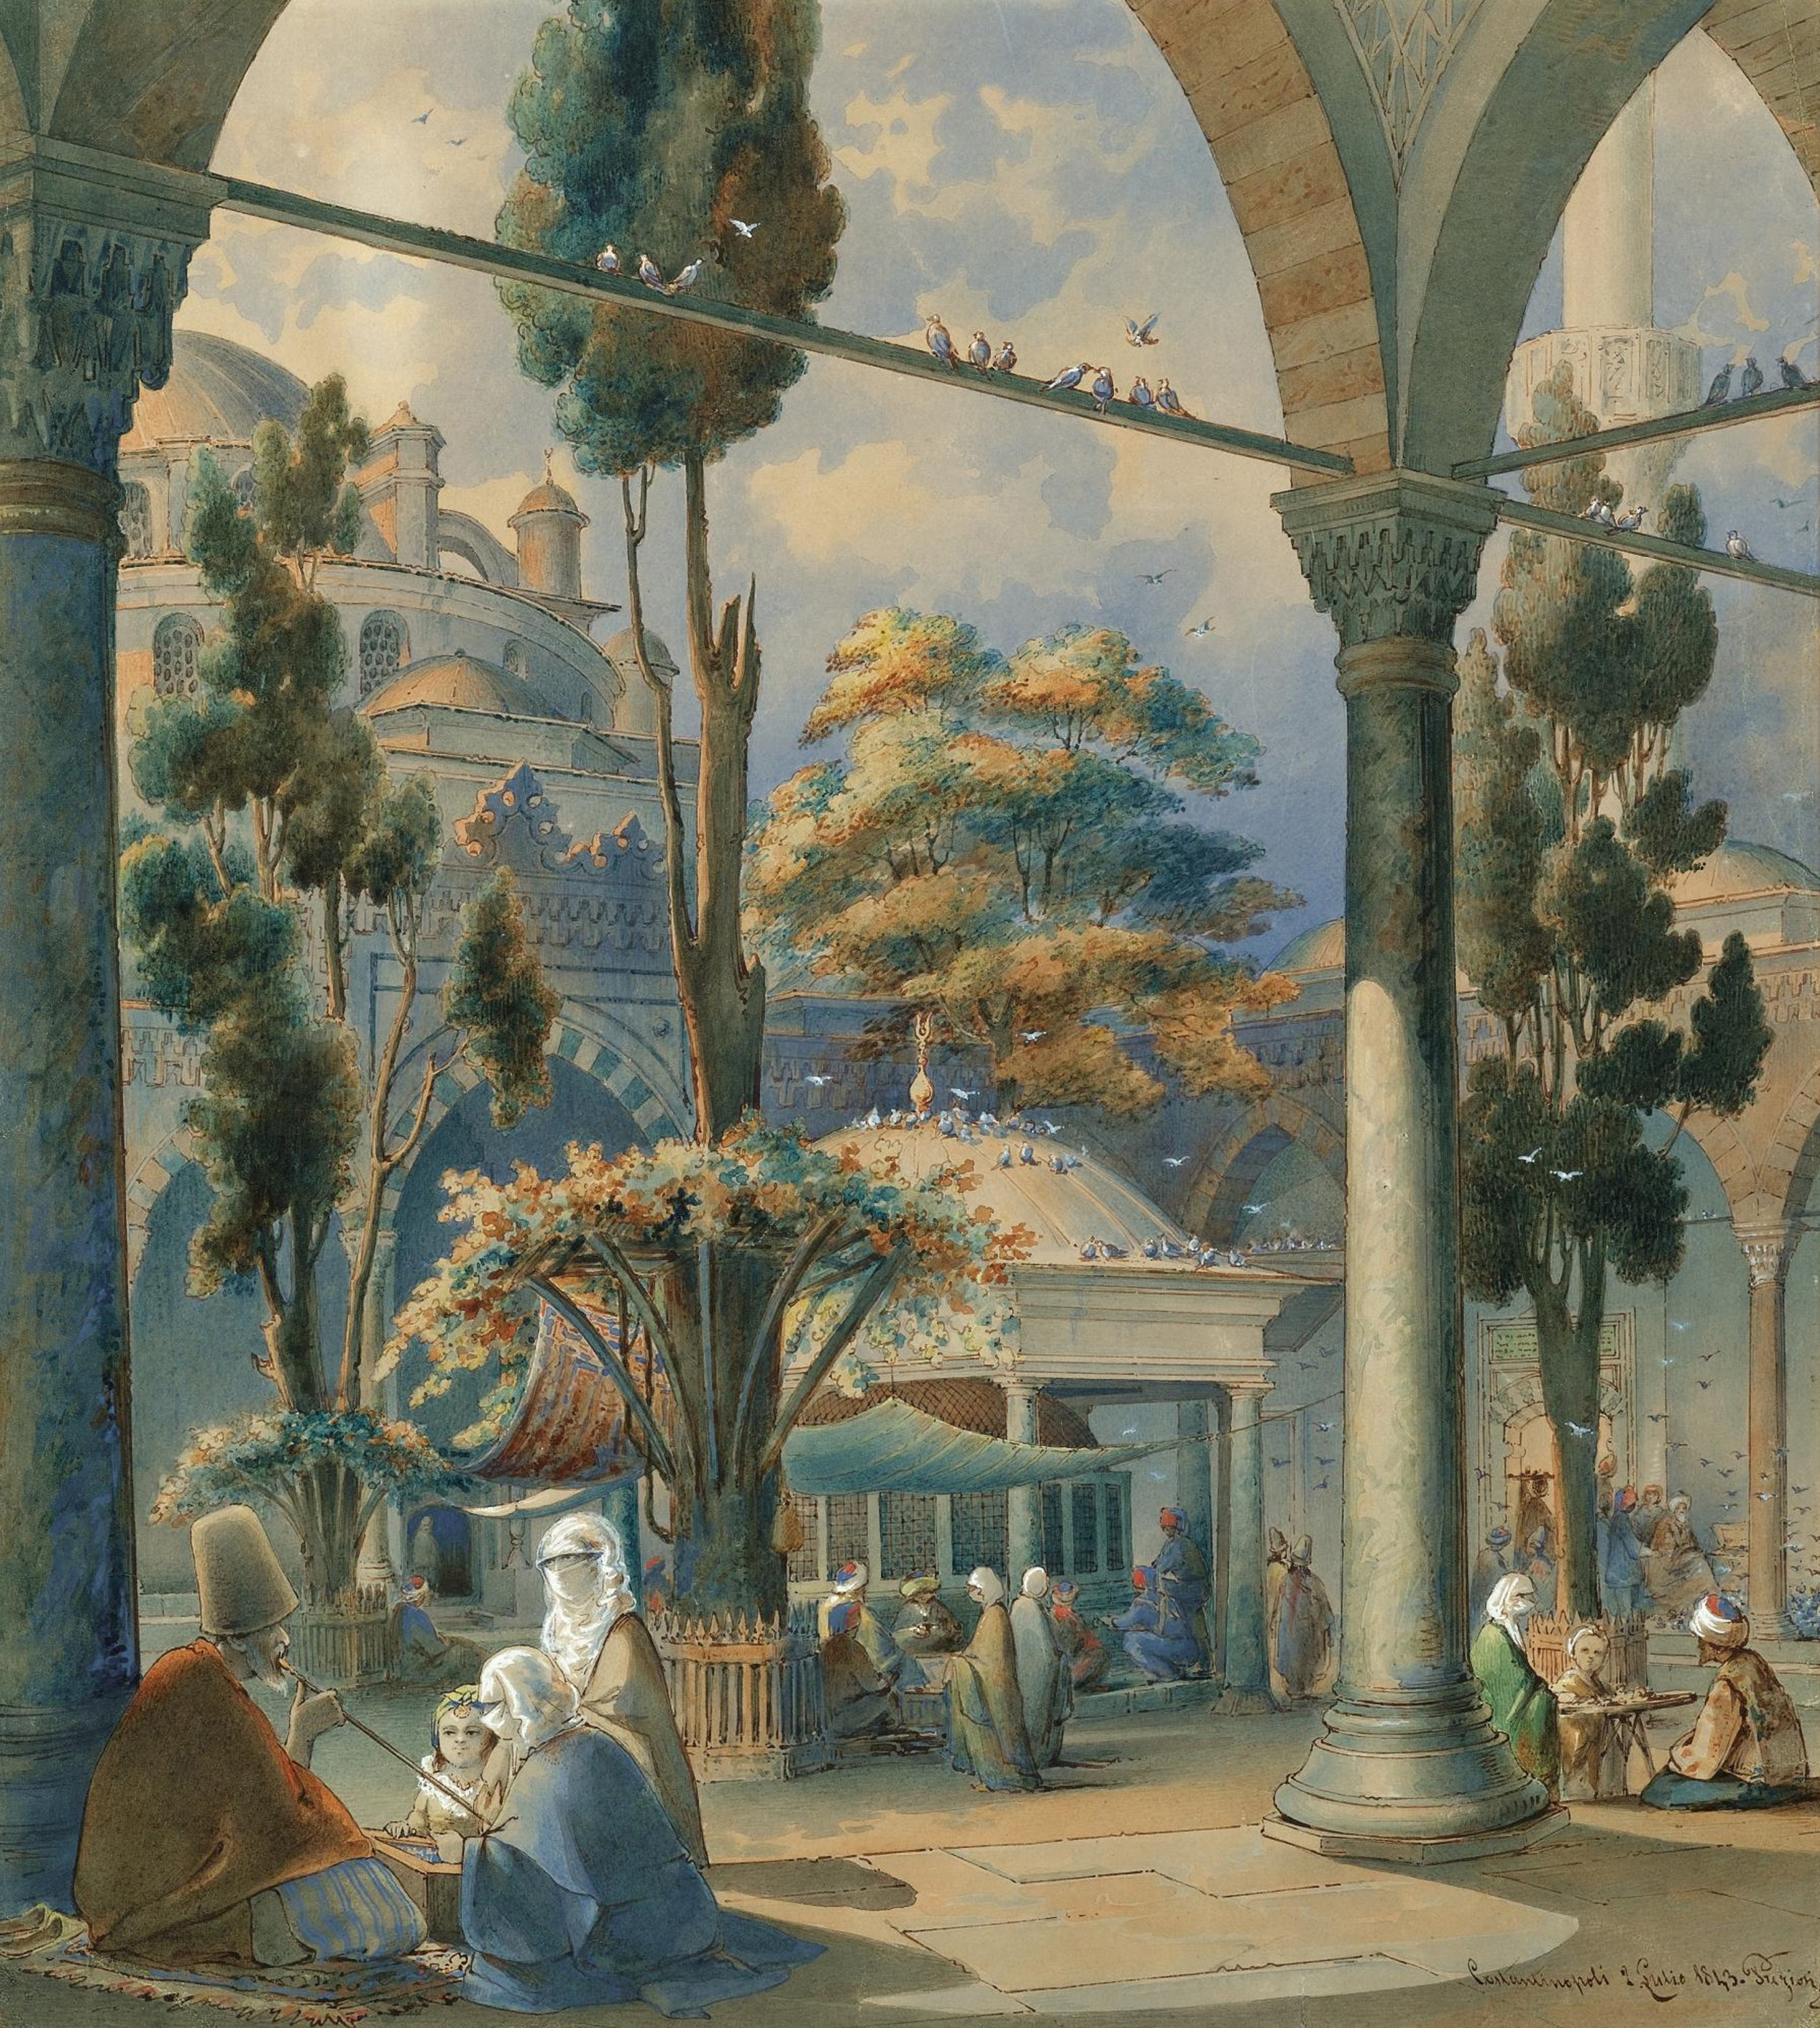 A painting by Amedeo Preziosi depicts the courtyard of the Bayezid Mosque in Istanbul. (Getty Images)